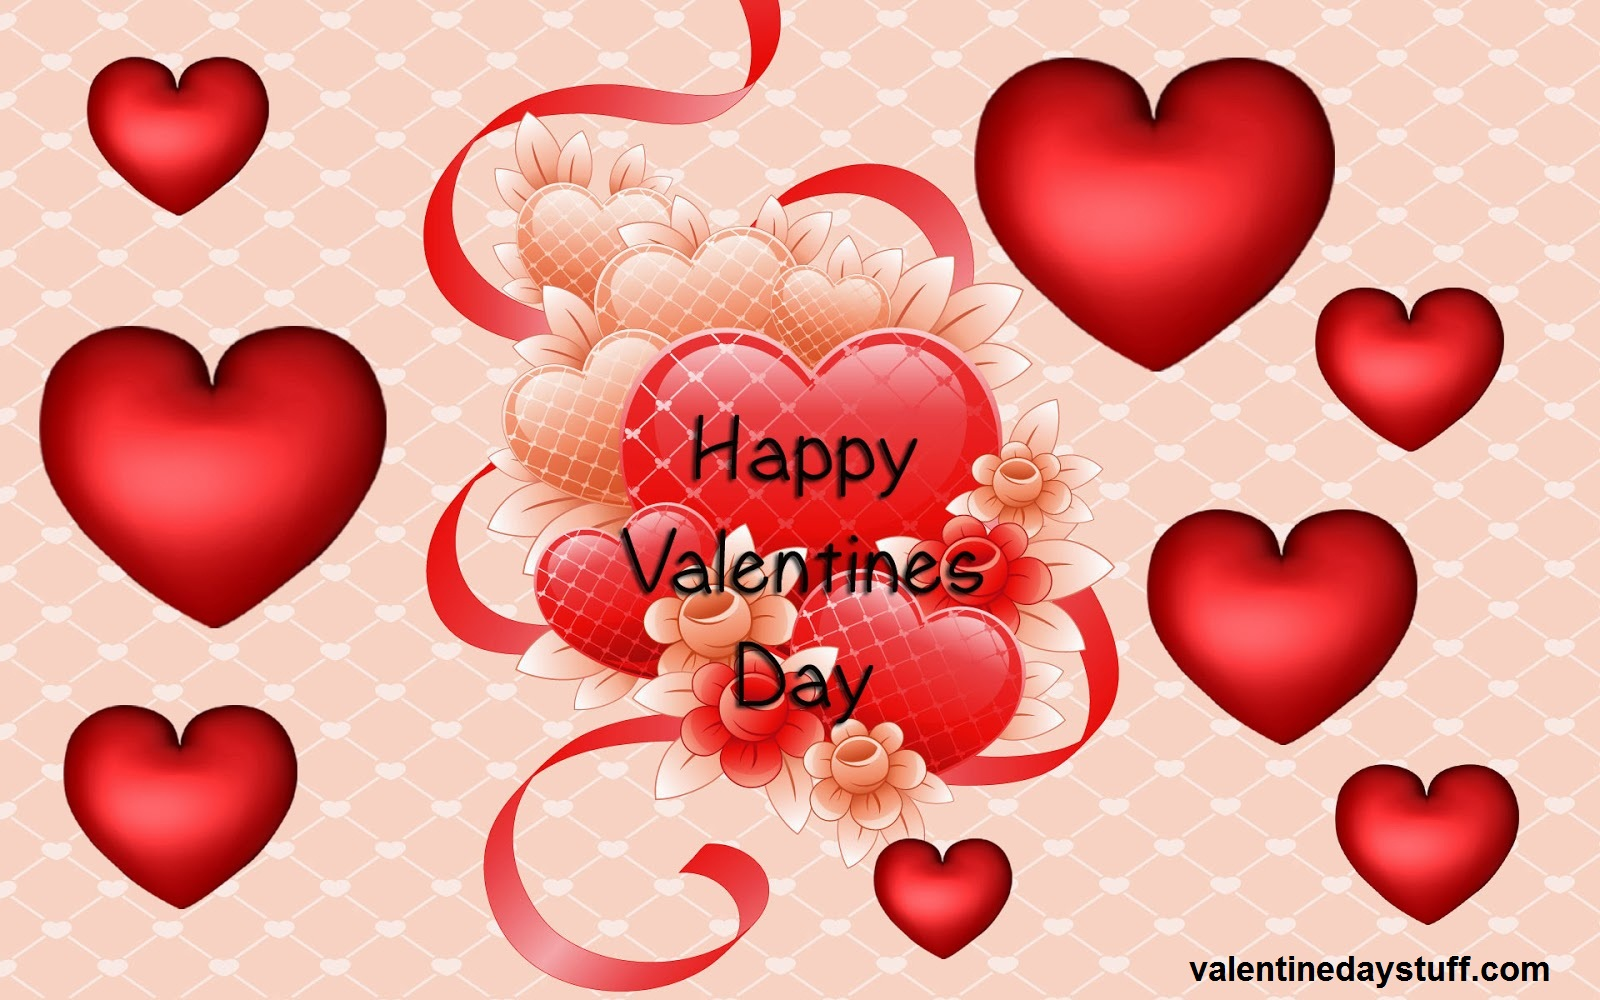 happy valentine's day greeting cards 2018 {free download} - techicy, Ideas